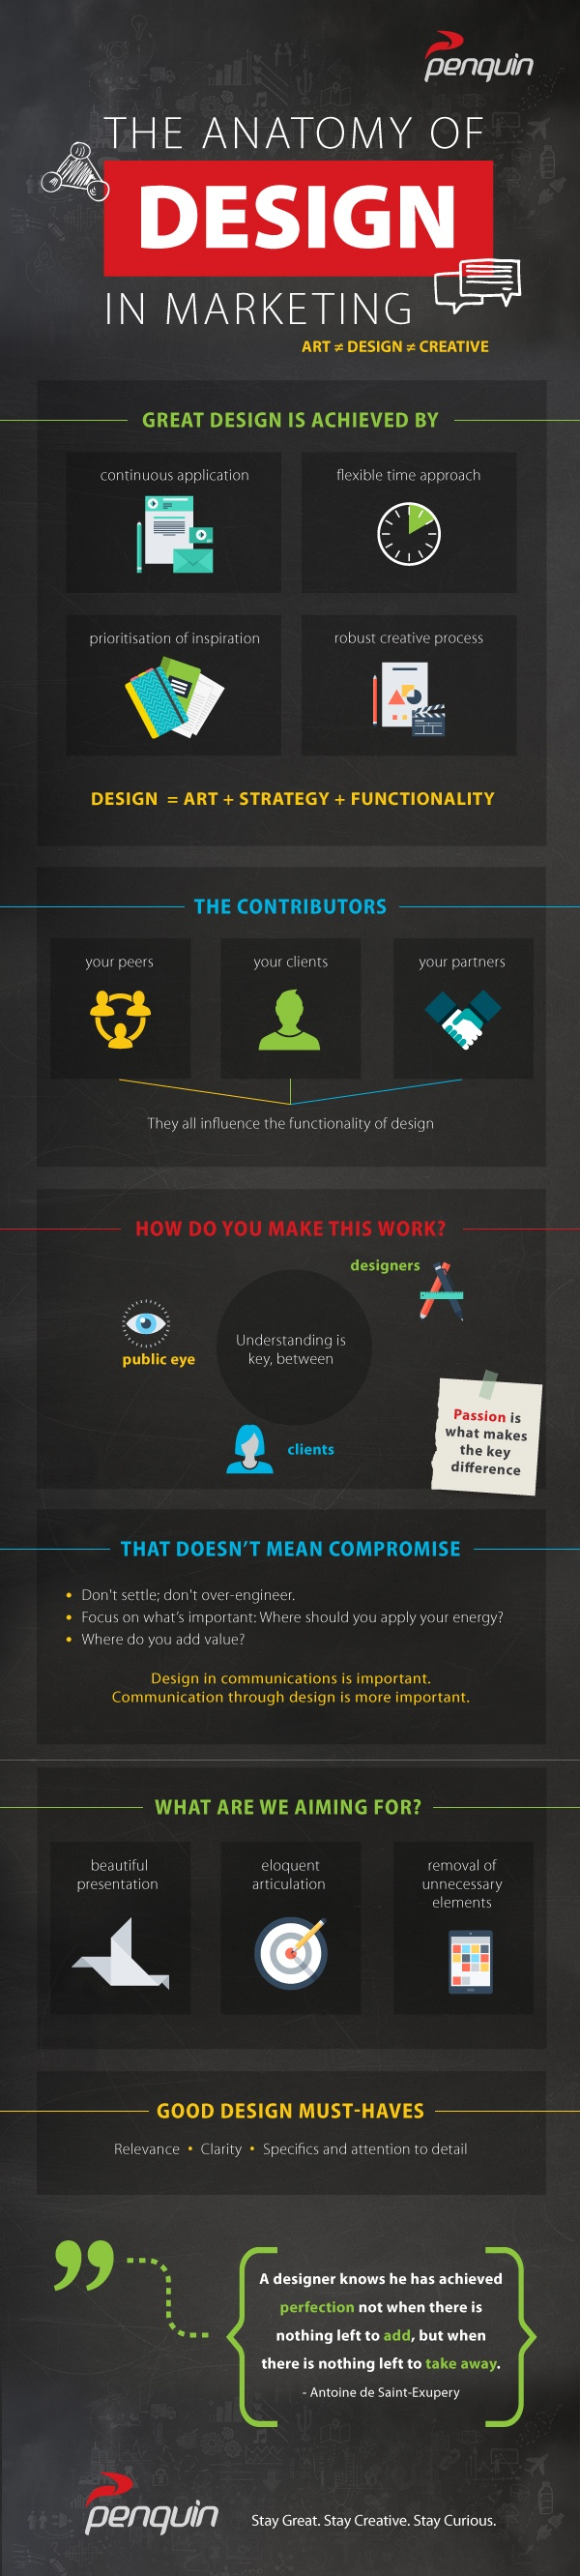 But is it Art? Penquin's infographic on what makes great design